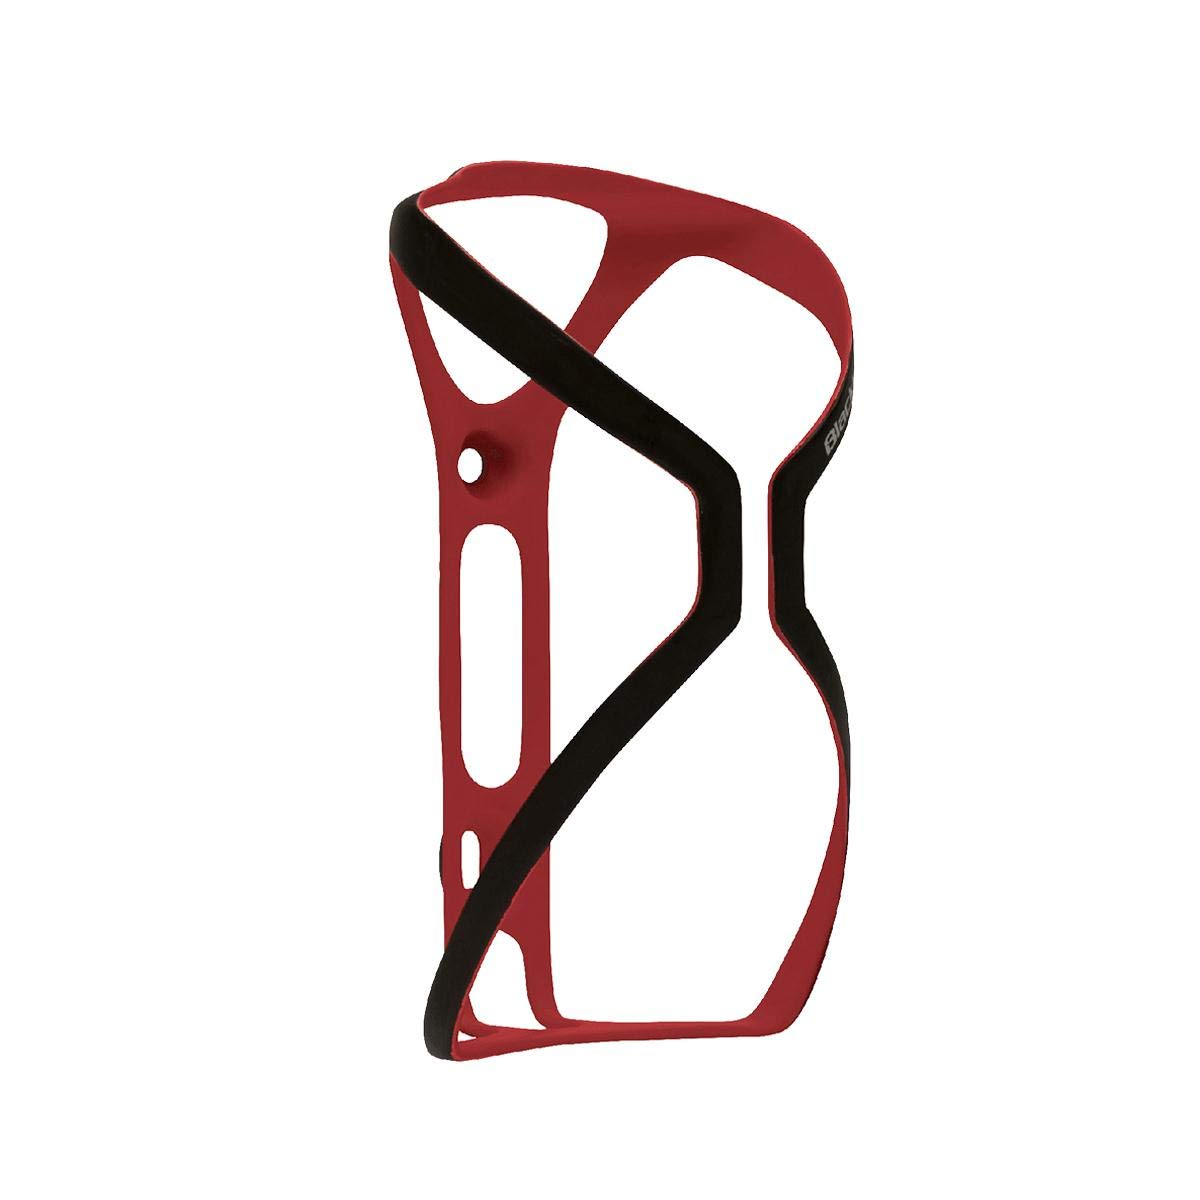 Blackburn Cinch Carbon Fiber Bottle Cage - Matte Red by Blackburn